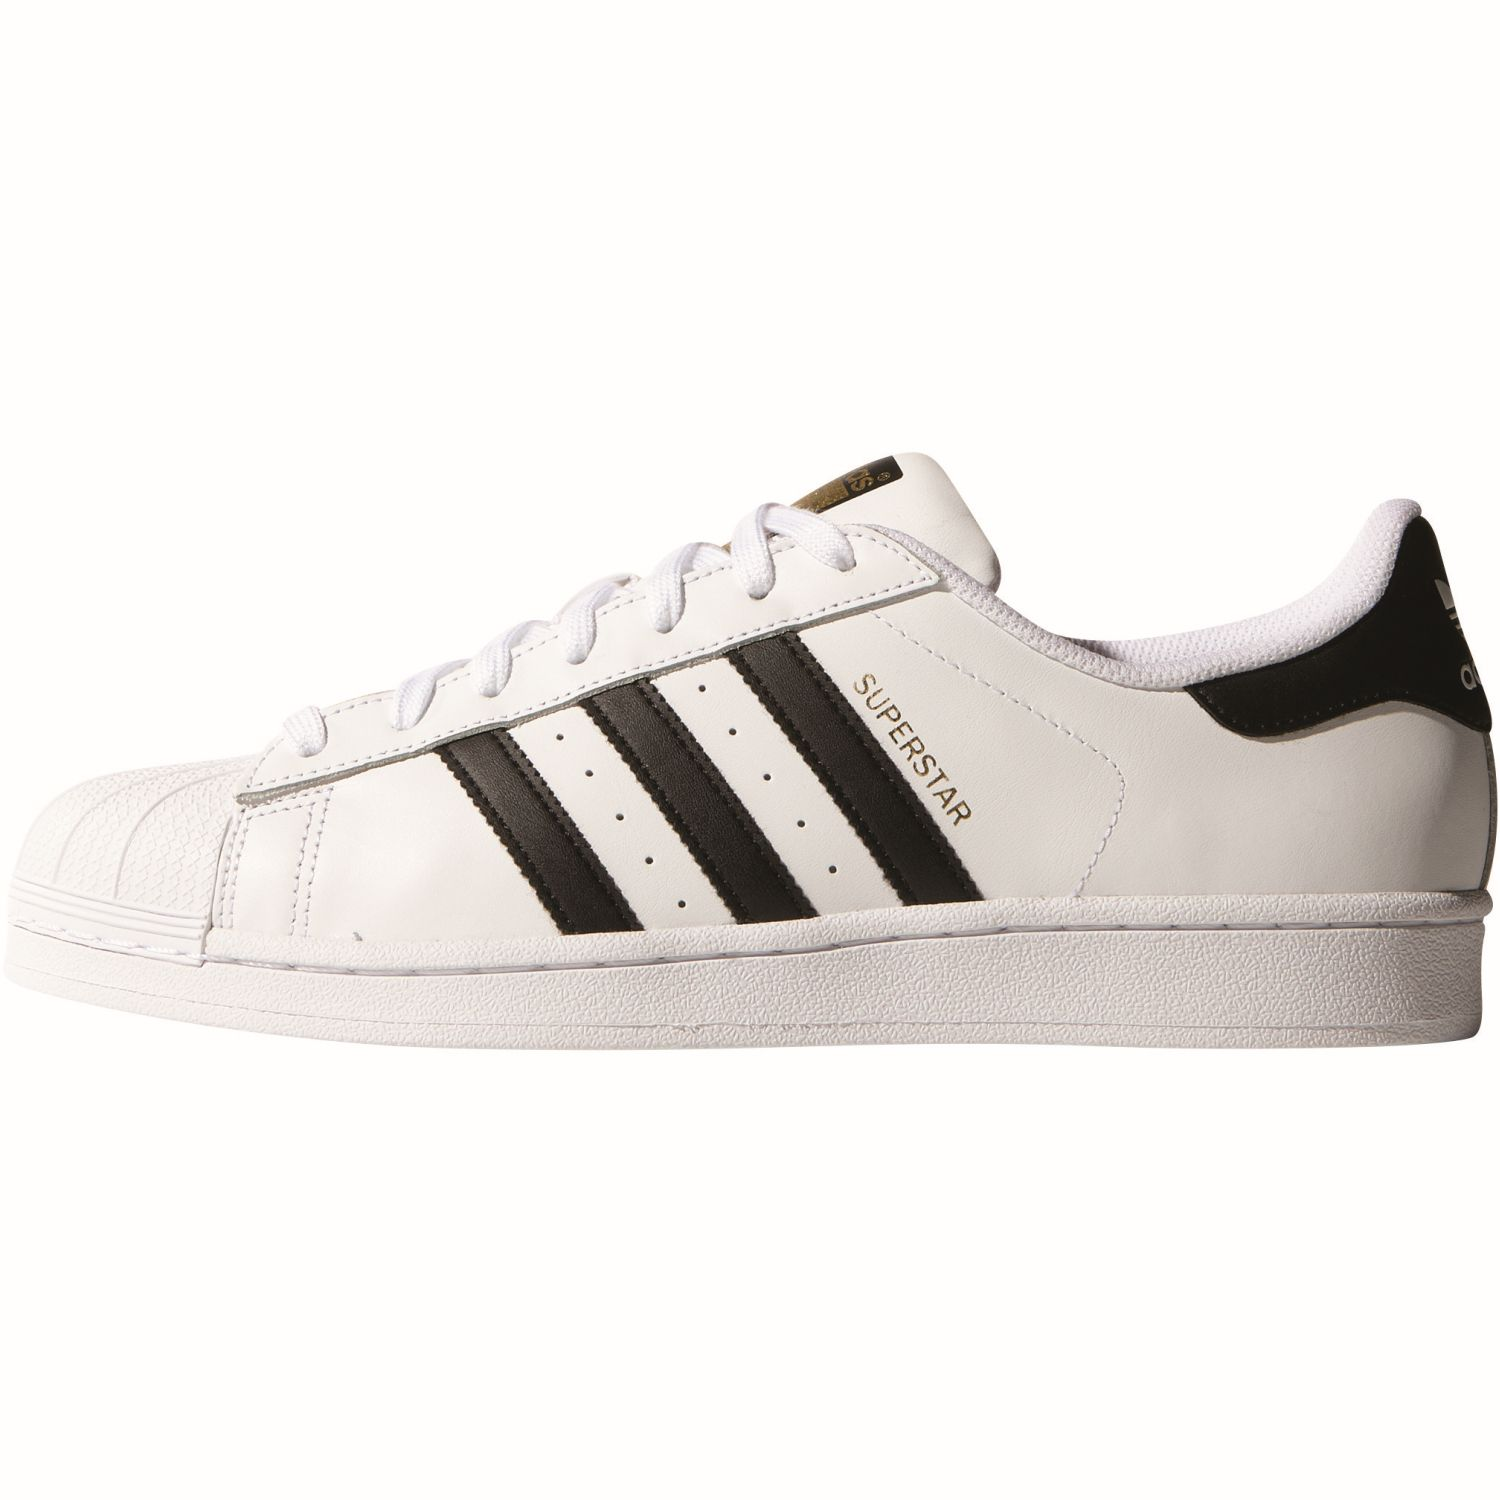 adidas originals superstar sneaker schuh c77124 kaufen bei markenkoffer. Black Bedroom Furniture Sets. Home Design Ideas